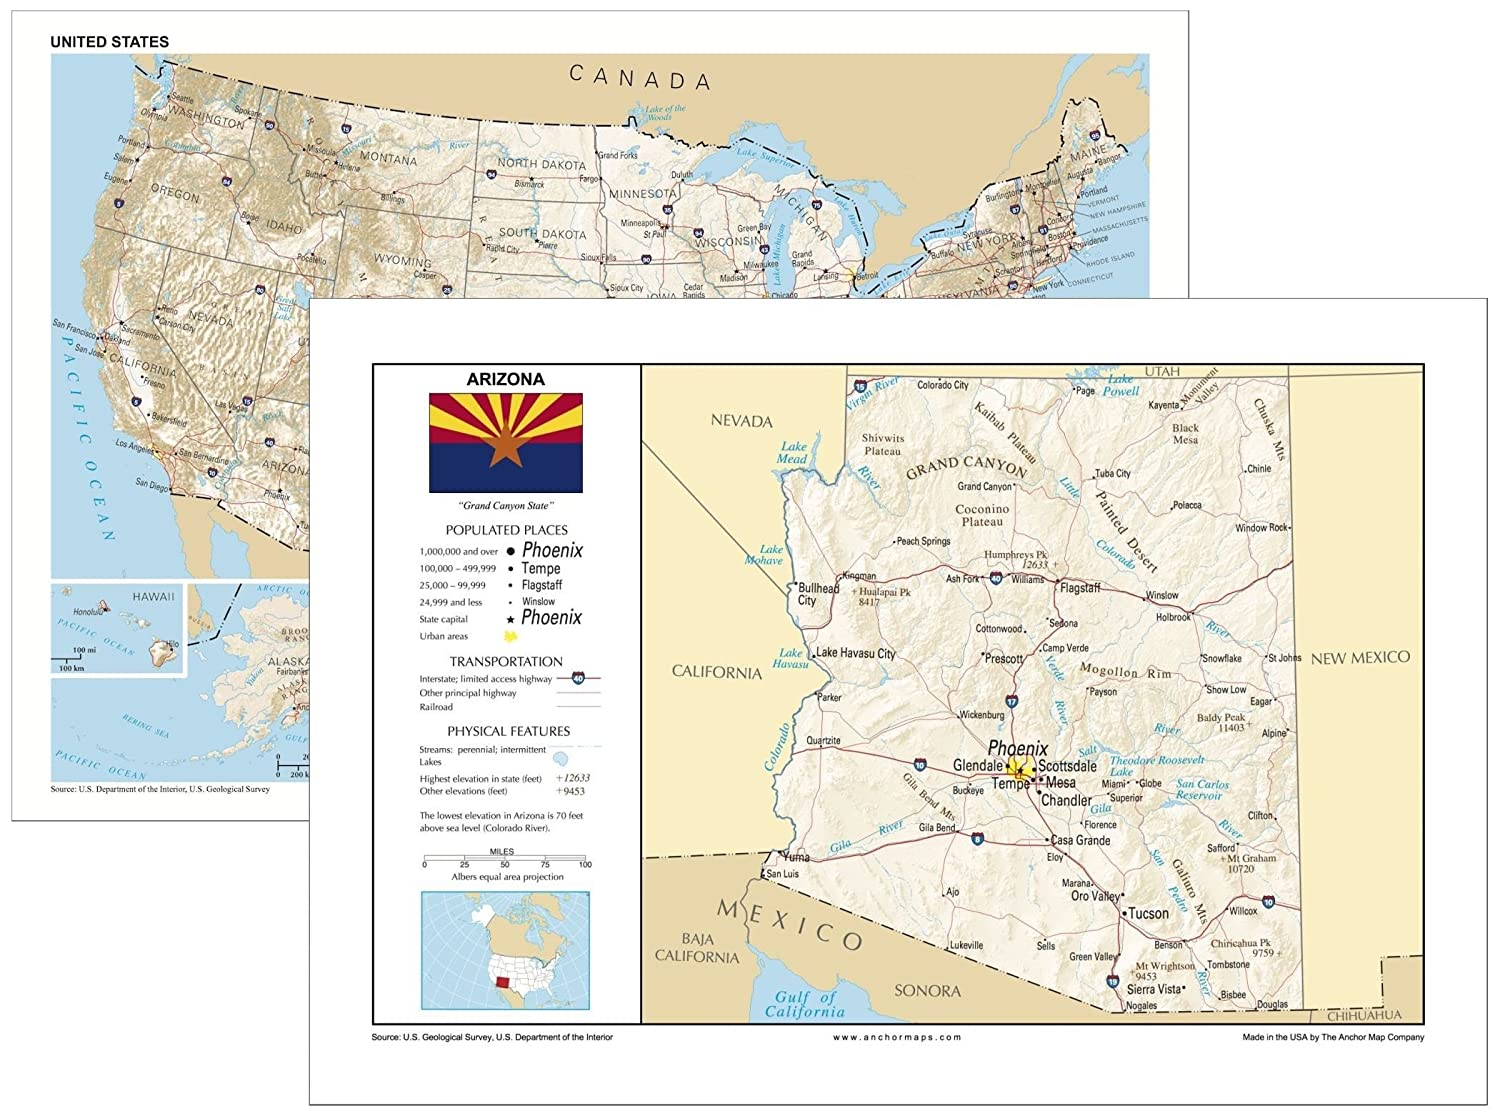 Amazon.com : 13x19 Arizona and 13x19 United States General ...